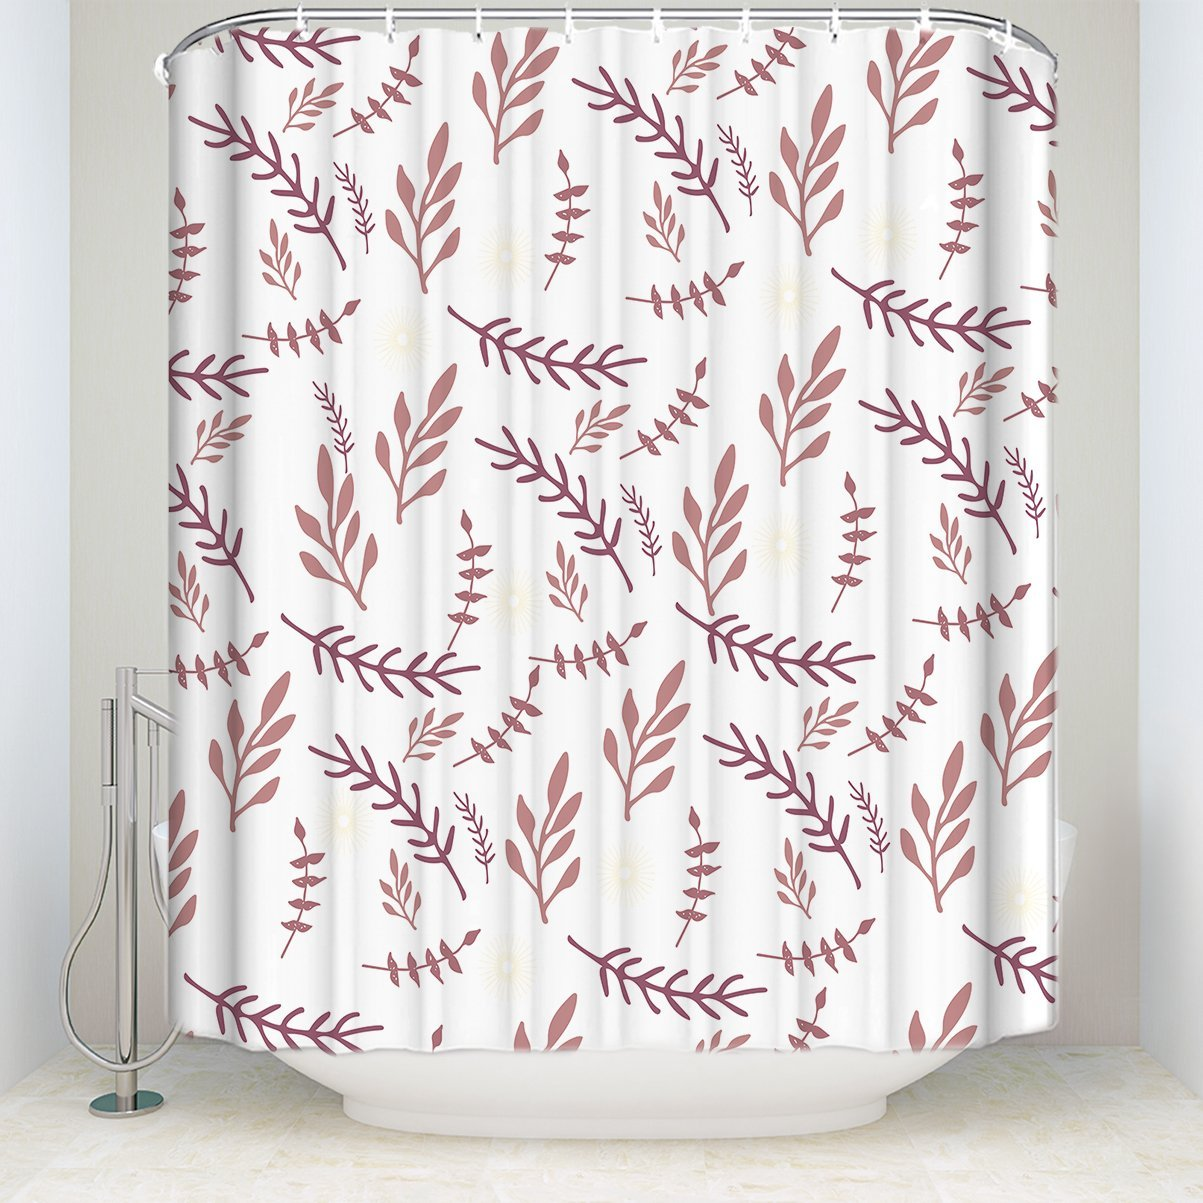 Tree Branches Shower Curtain Rustic Style Bathroom Decor Natural Polyester Fabric Shower Curtains